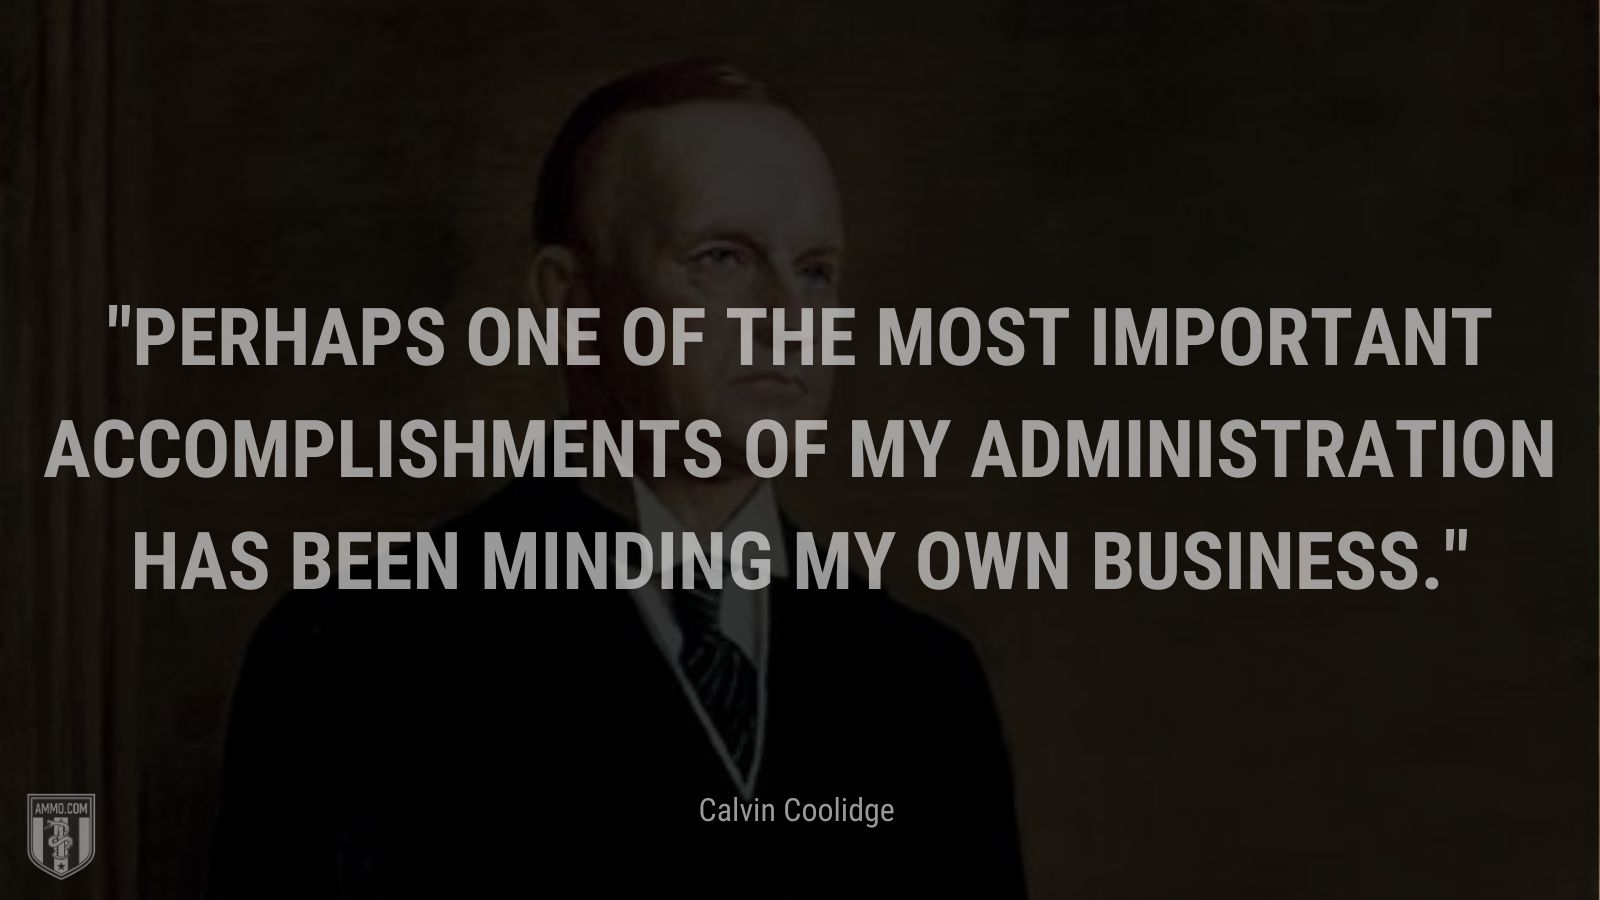 """""""Perhaps one of the most important accomplishments of my administration has been minding my own business."""" - Calvin Coolidge"""